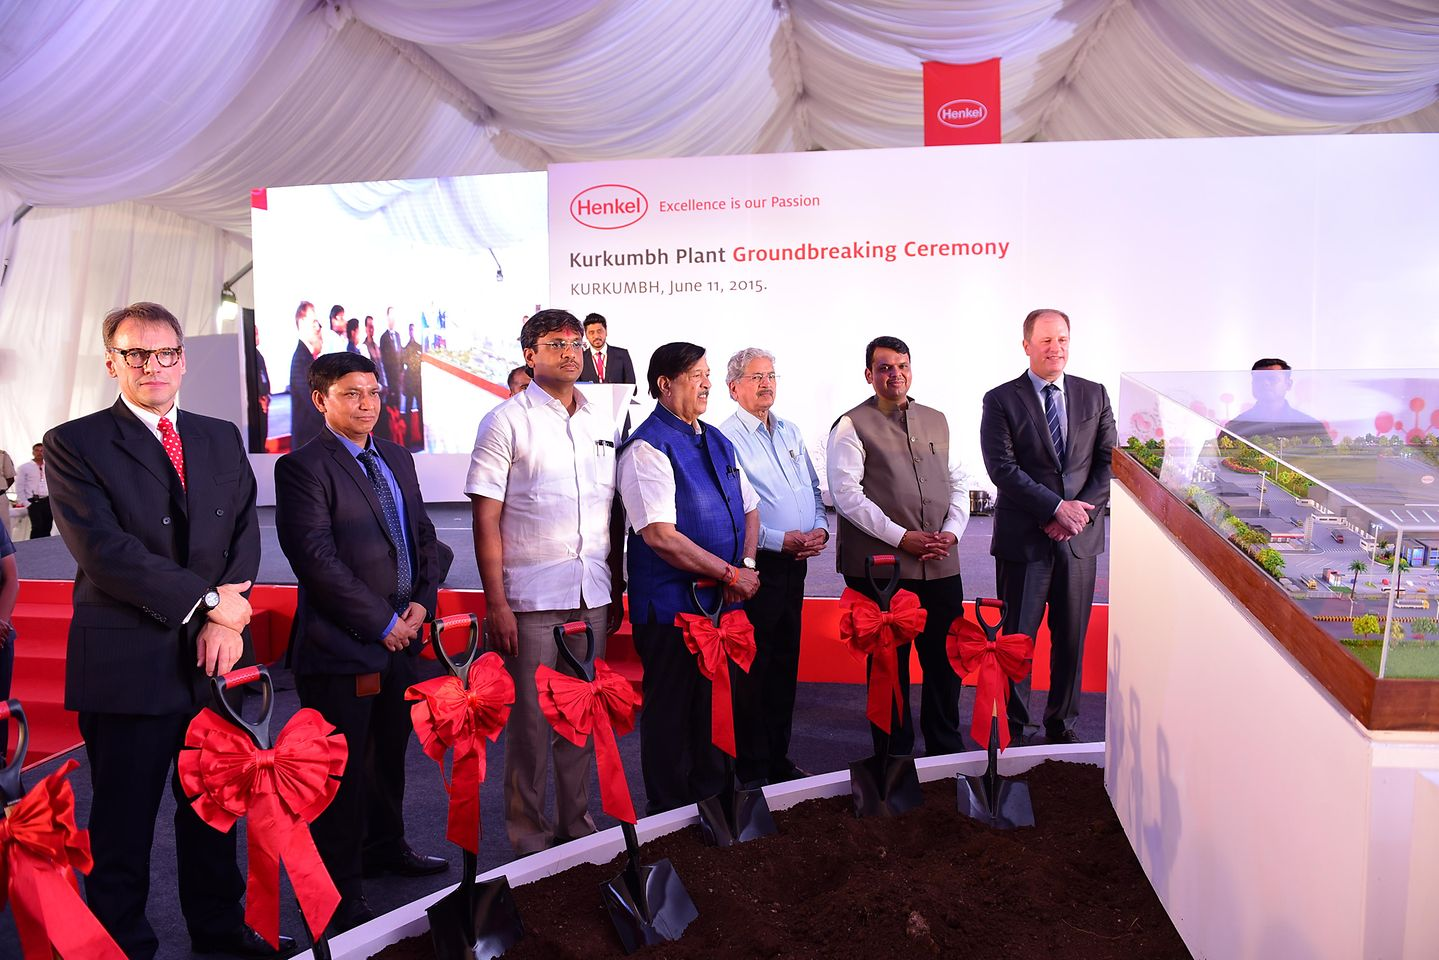 Paul Kirsch (right), Jeremy Hunter (left), and Surendra Mehra (second from left), Project Head of the Kurkumbh Plant, symbolically laid the foundation with dignitaries from the Maharashtra government